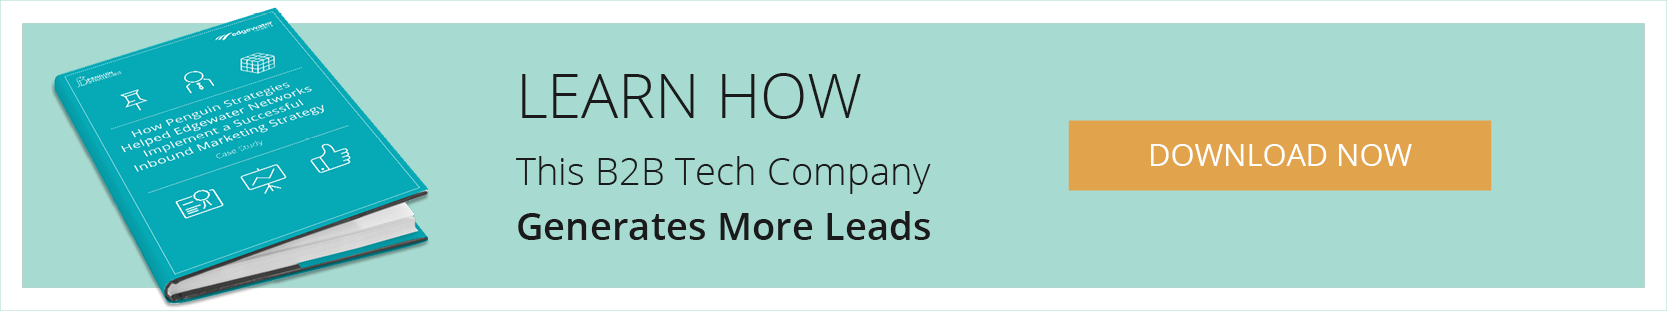 B2B Tech company Leads